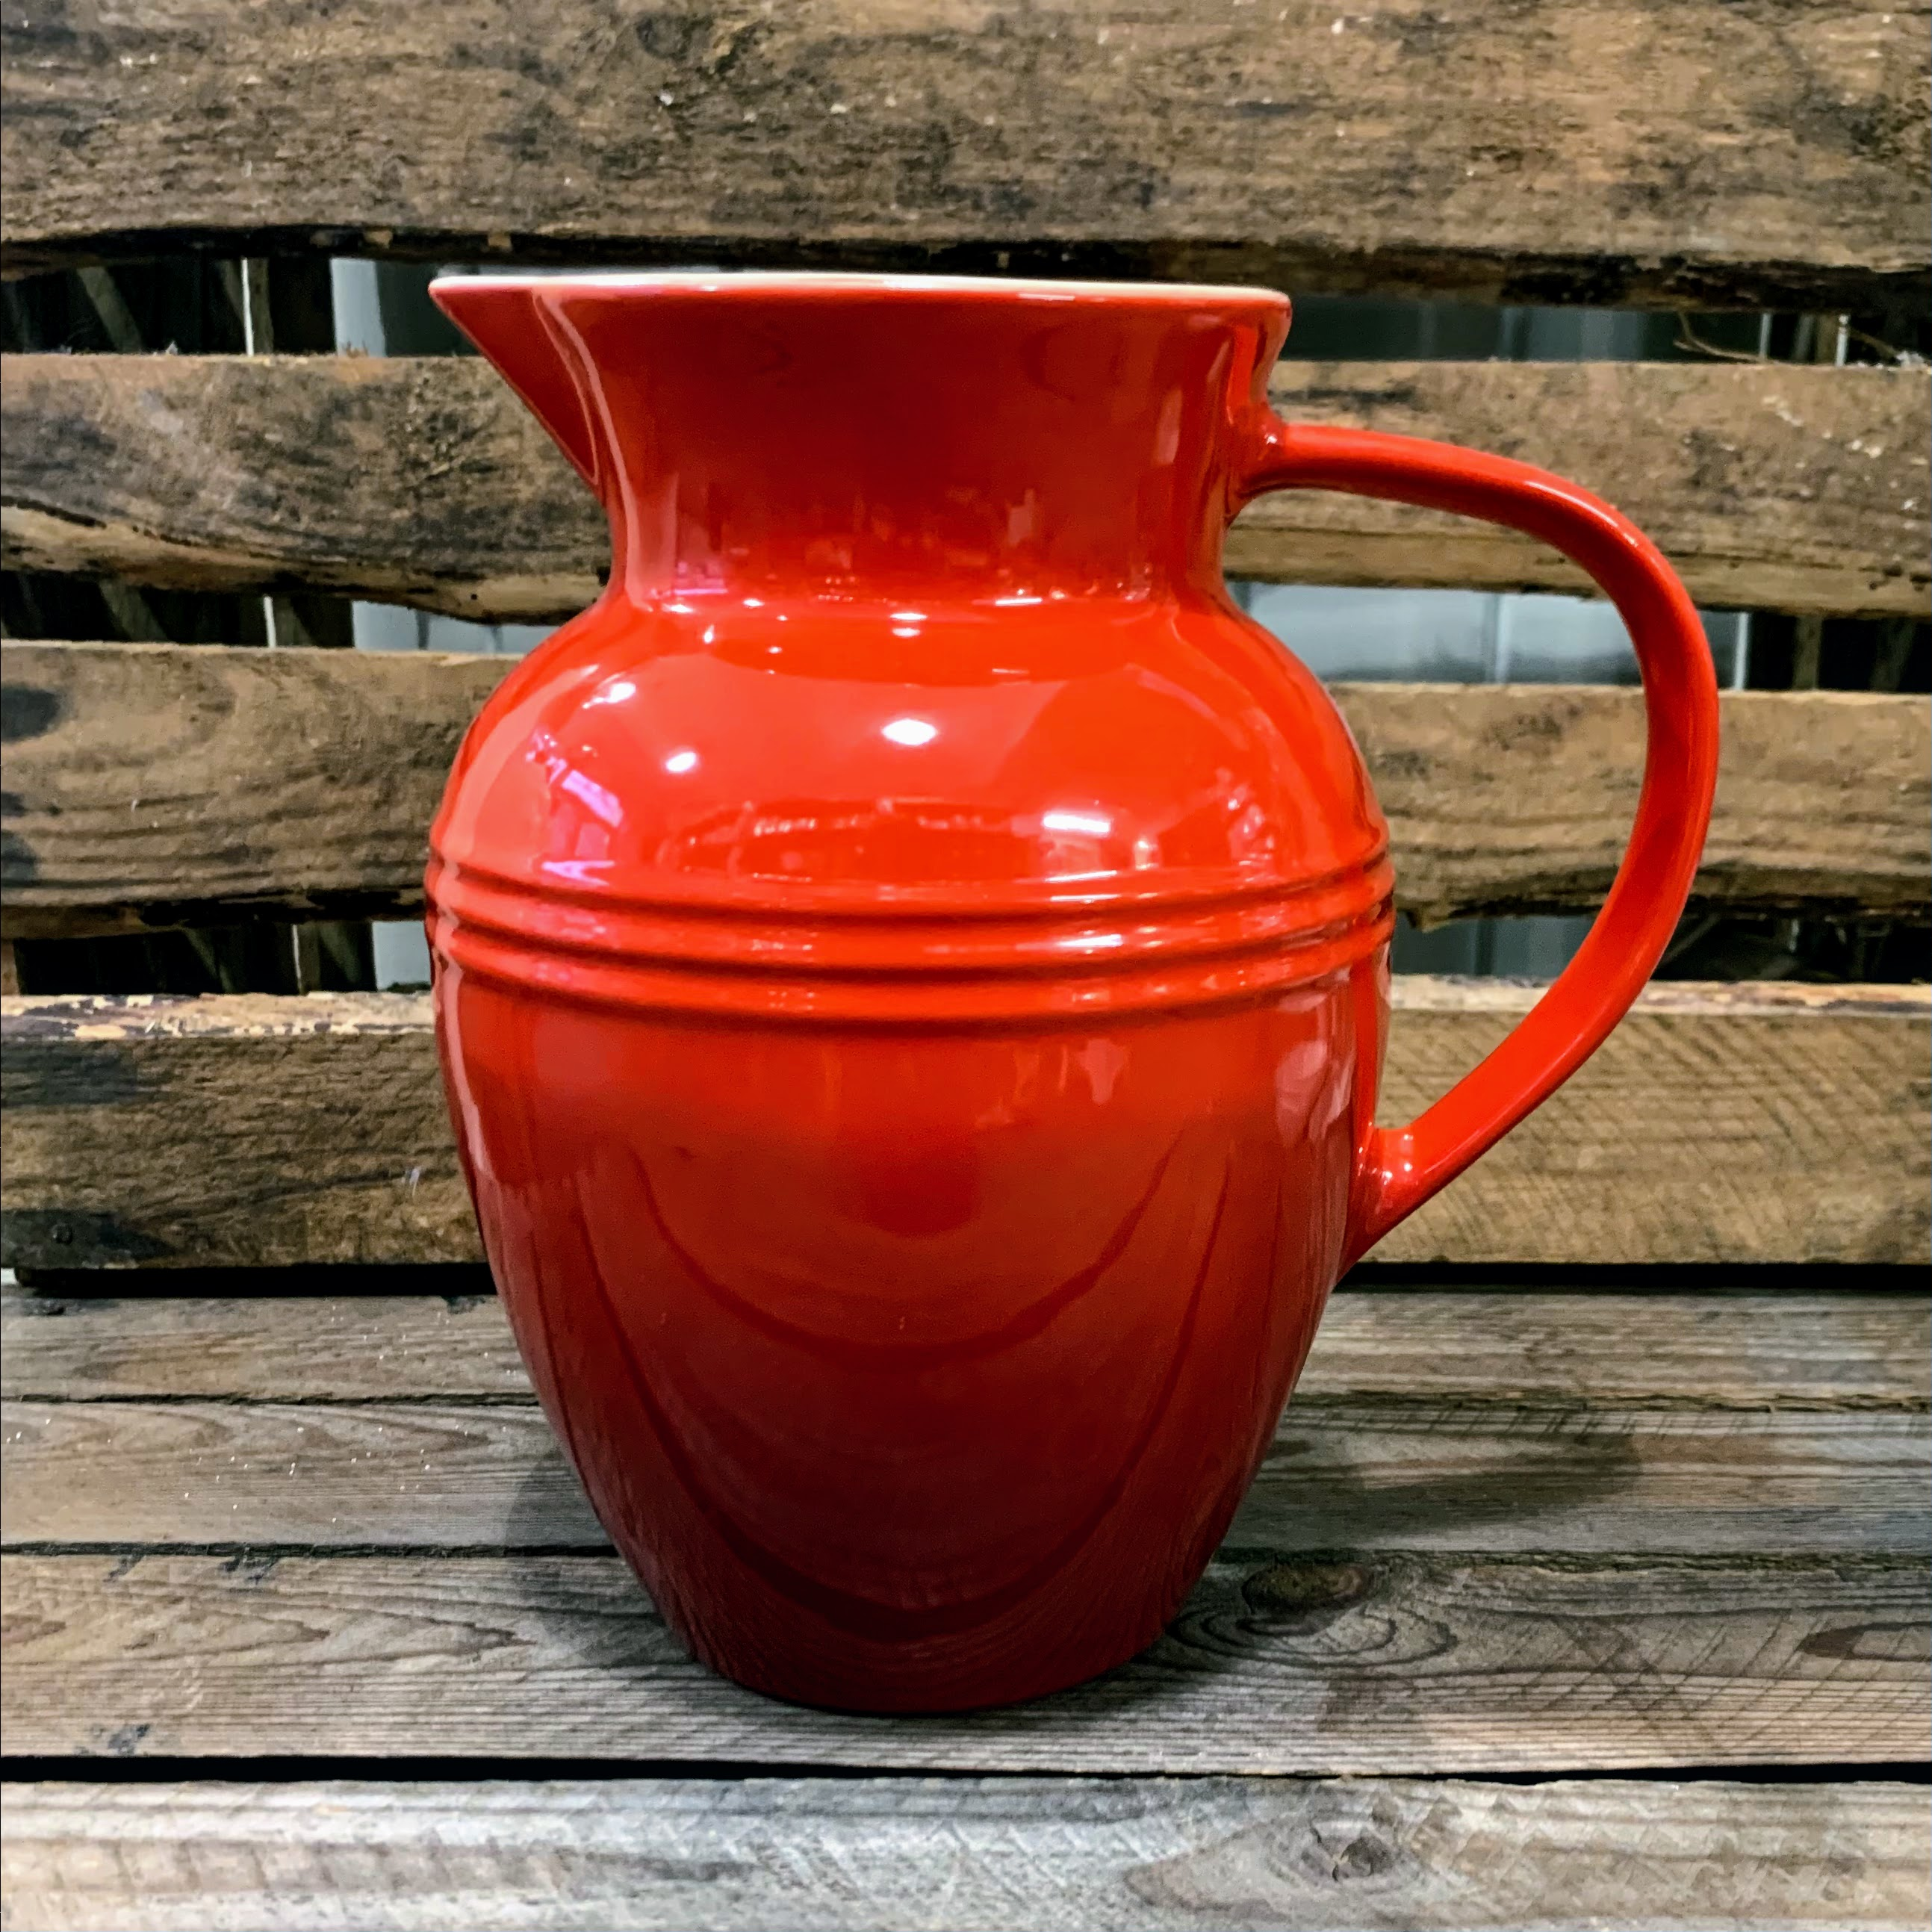 Le Creuset Cerise Pitcher - Limited Edition